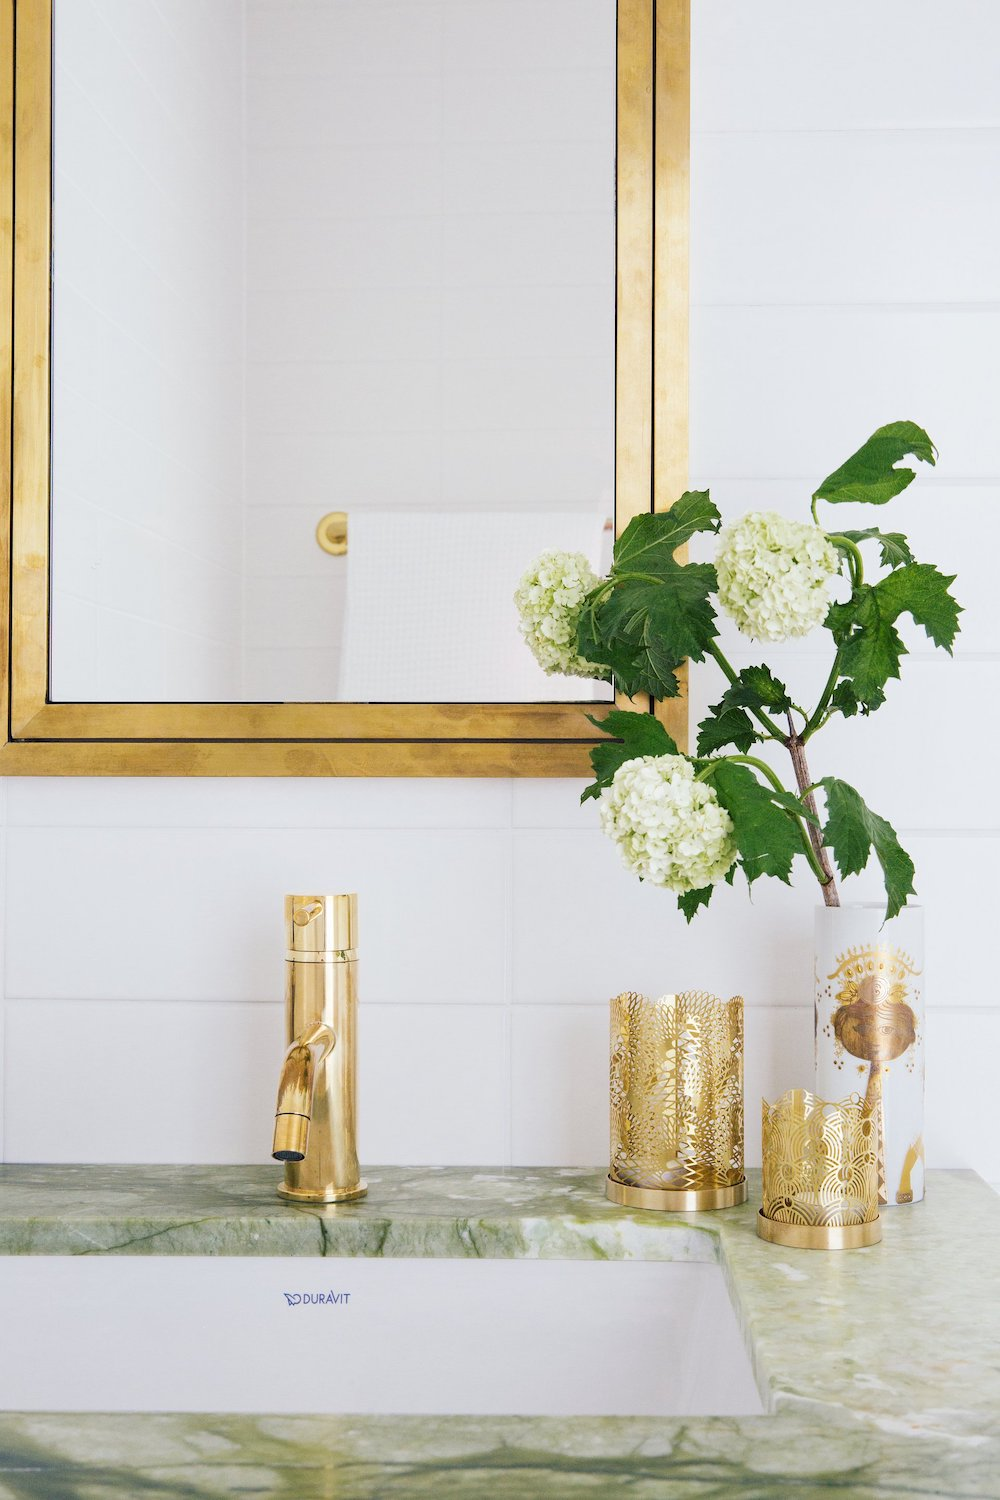 Brass Bathroom Accessories and Fixtures with Duravit Sink and Brass Faucet via Paris Forino